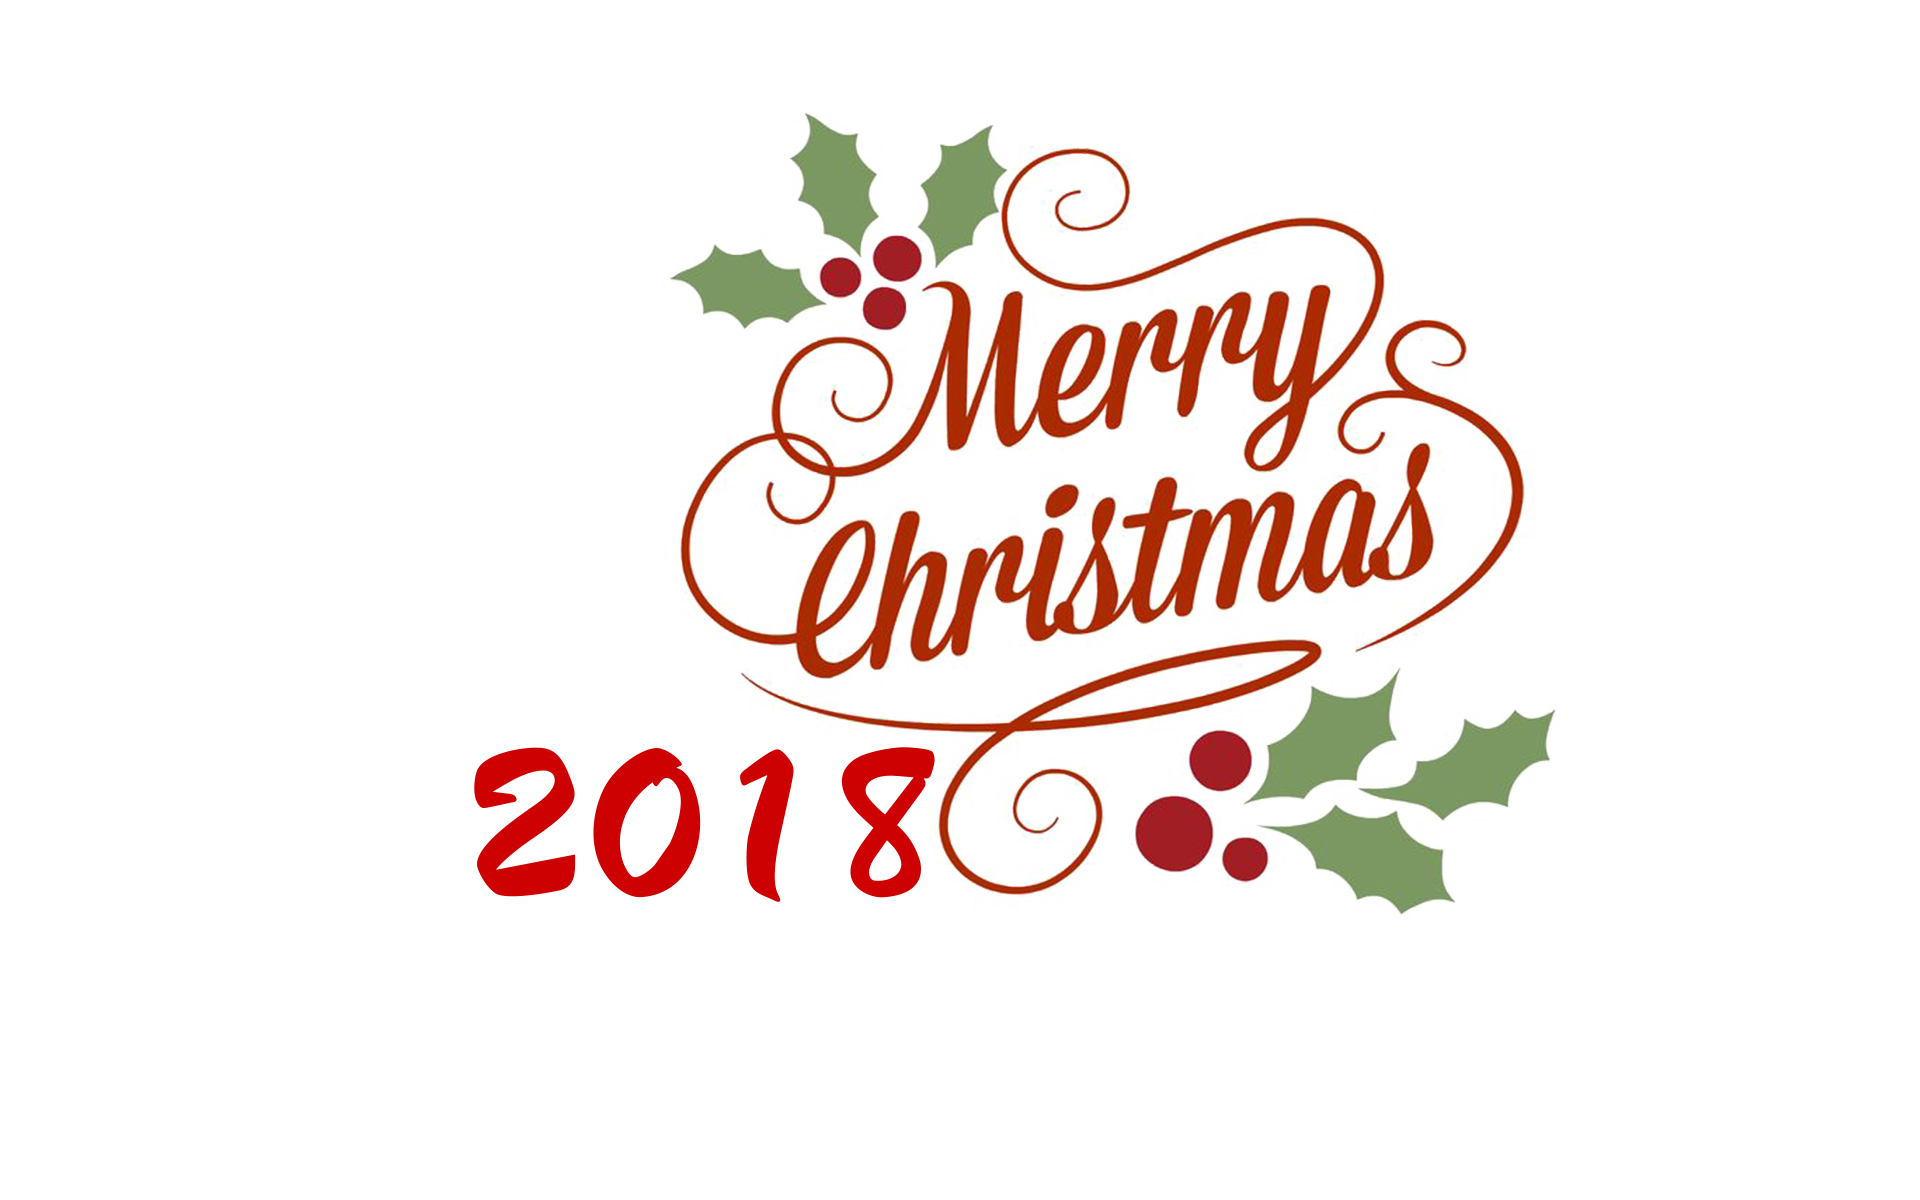 Merry Christmas 2018 PNG Transparent.